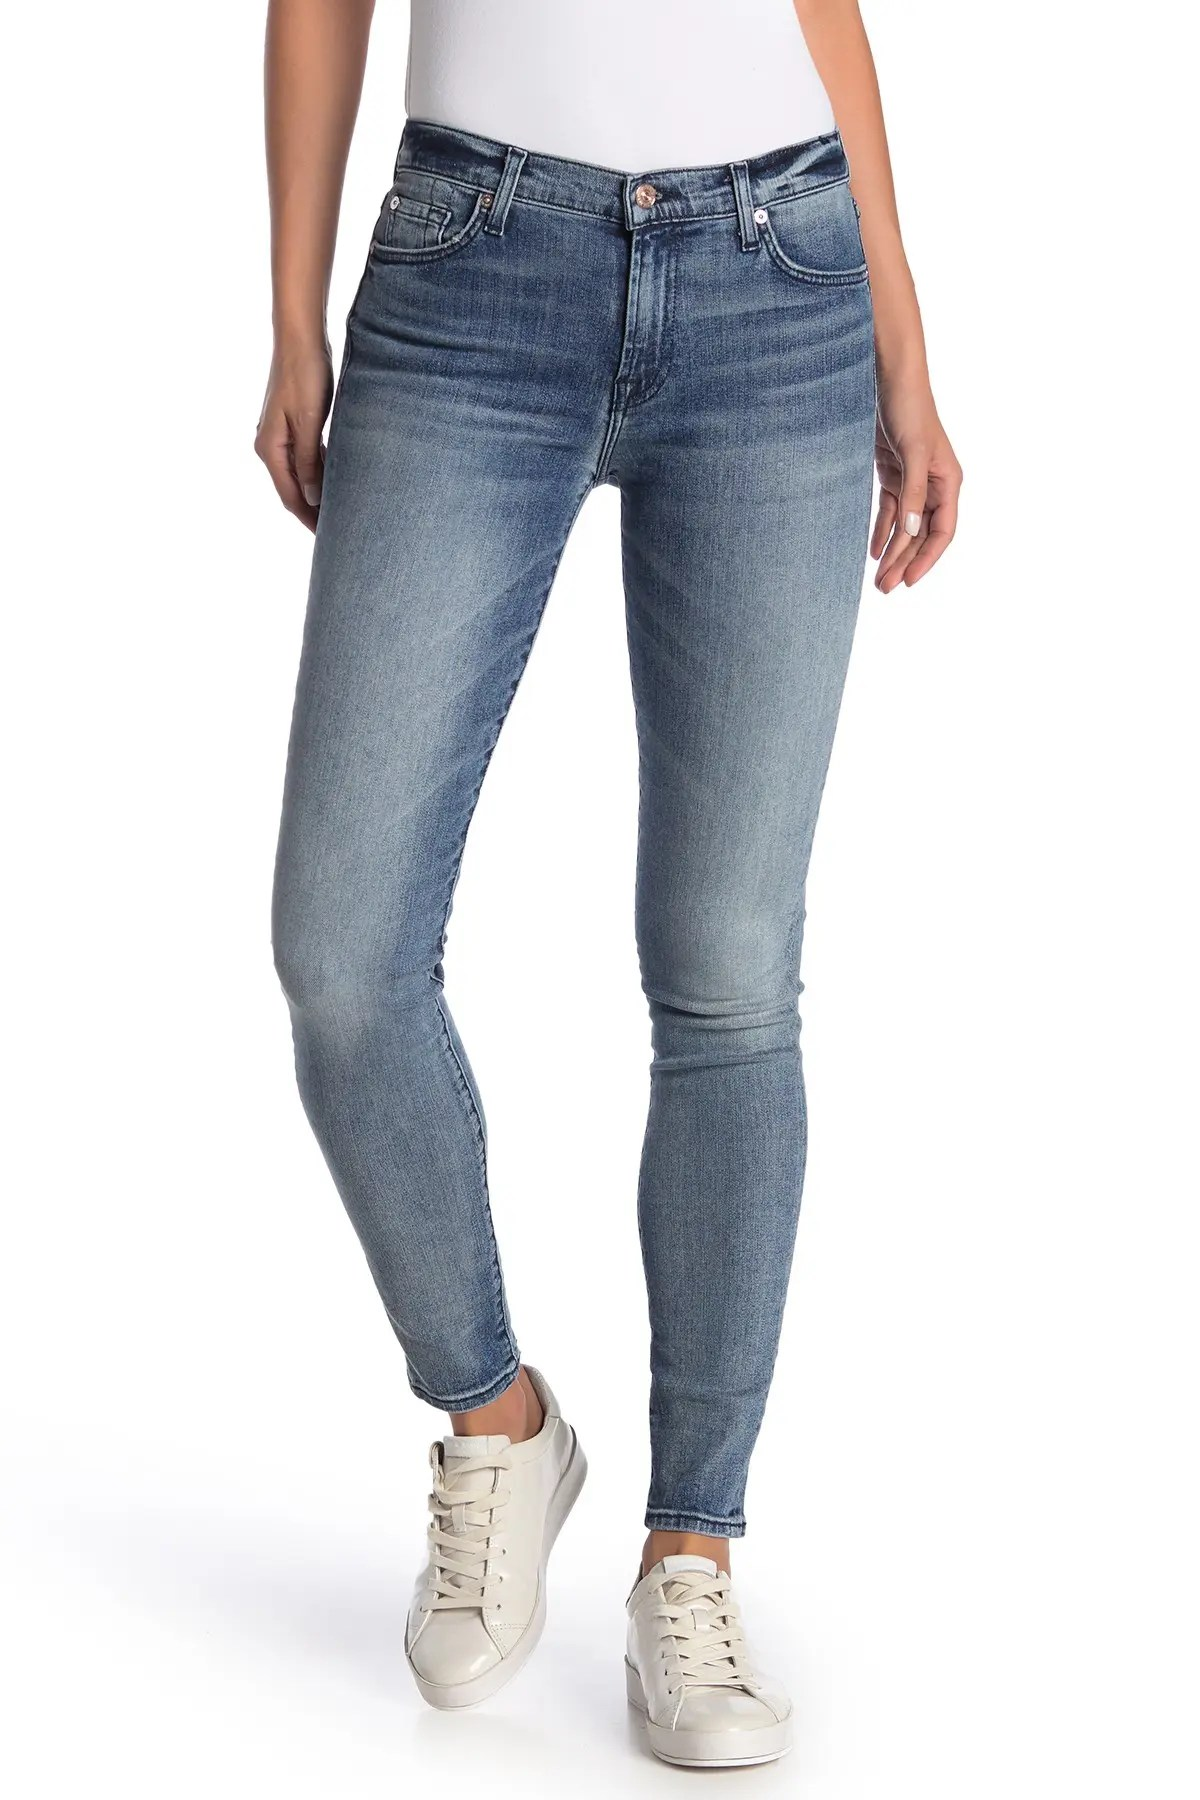 7 for all mankind the skinny with squiggle skinny jeans nordstrom rack